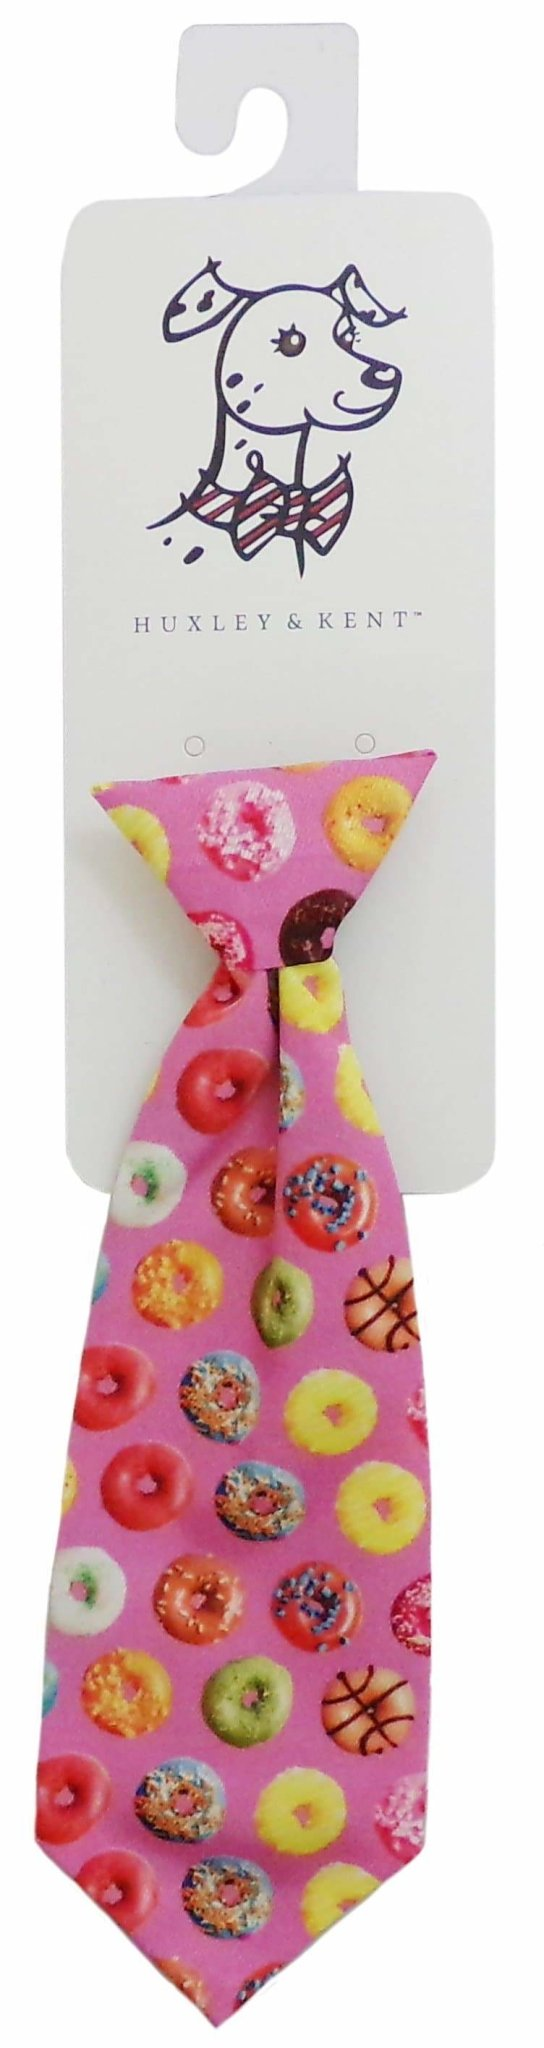 Novelty Long Tie - Donut Shoppe - Coco and Chili's Shop